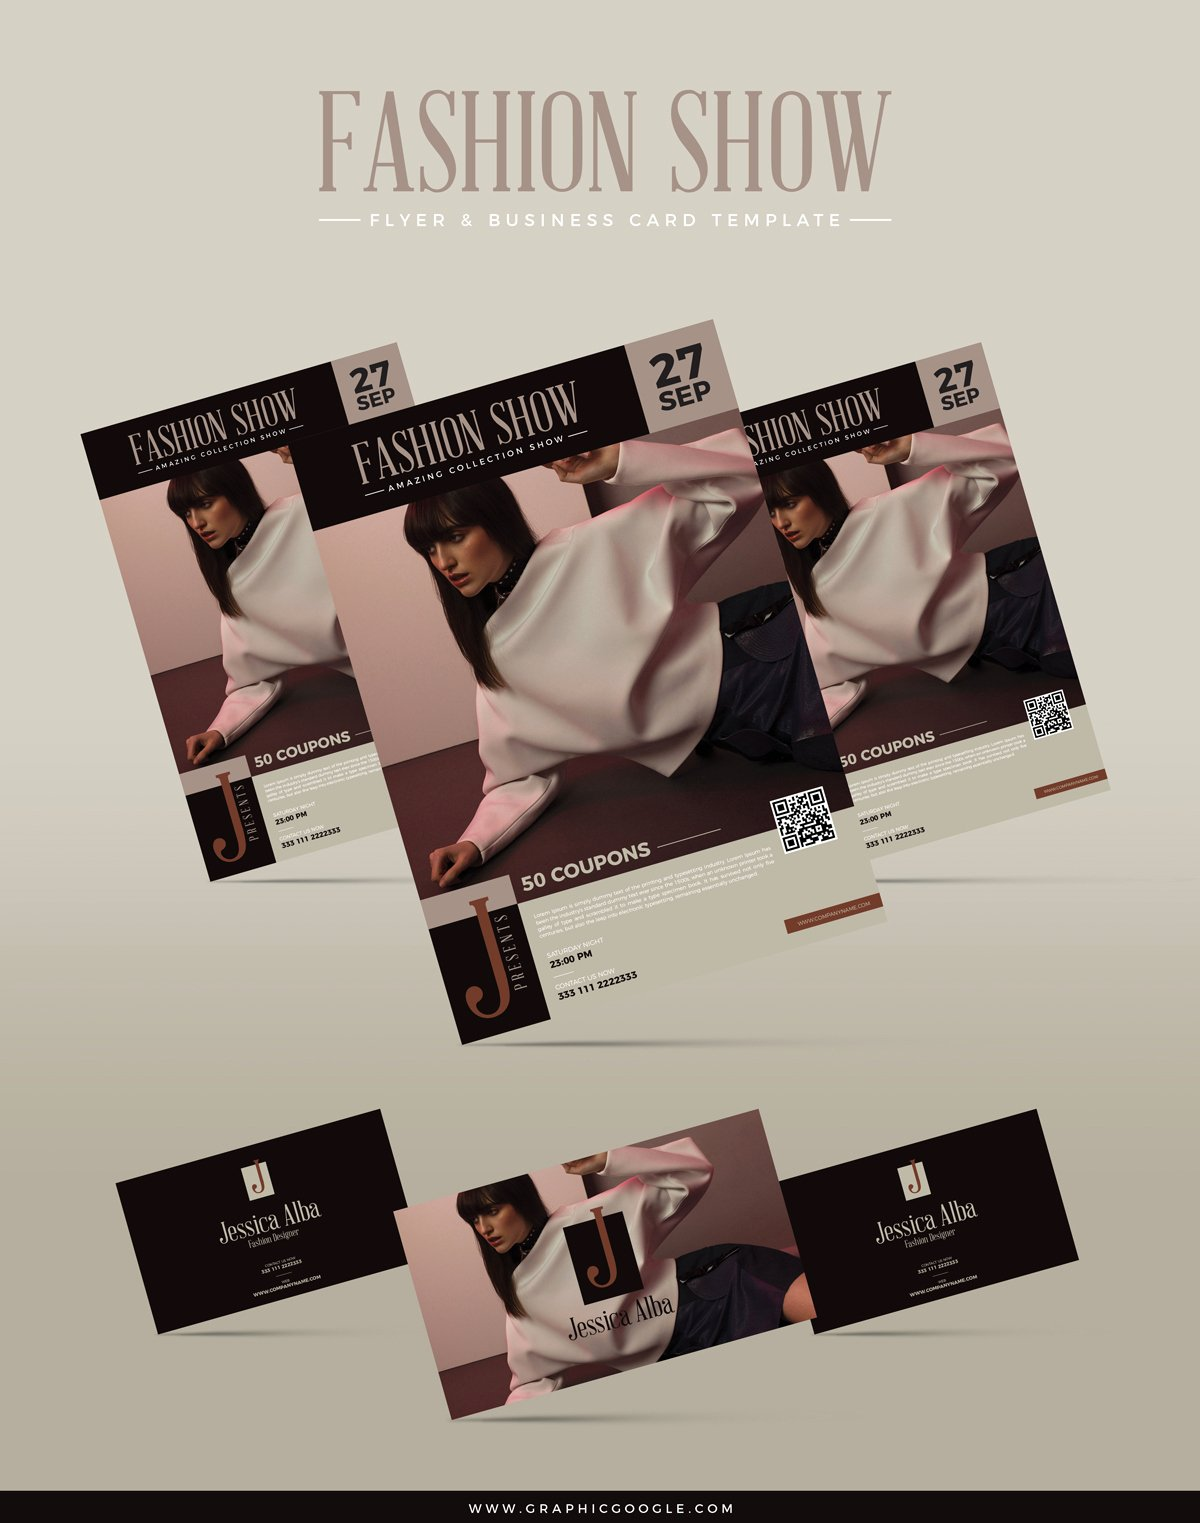 Fashion Show Flyers Template Best Of Free Fashion Show Flyer & Business Card Templategraphic